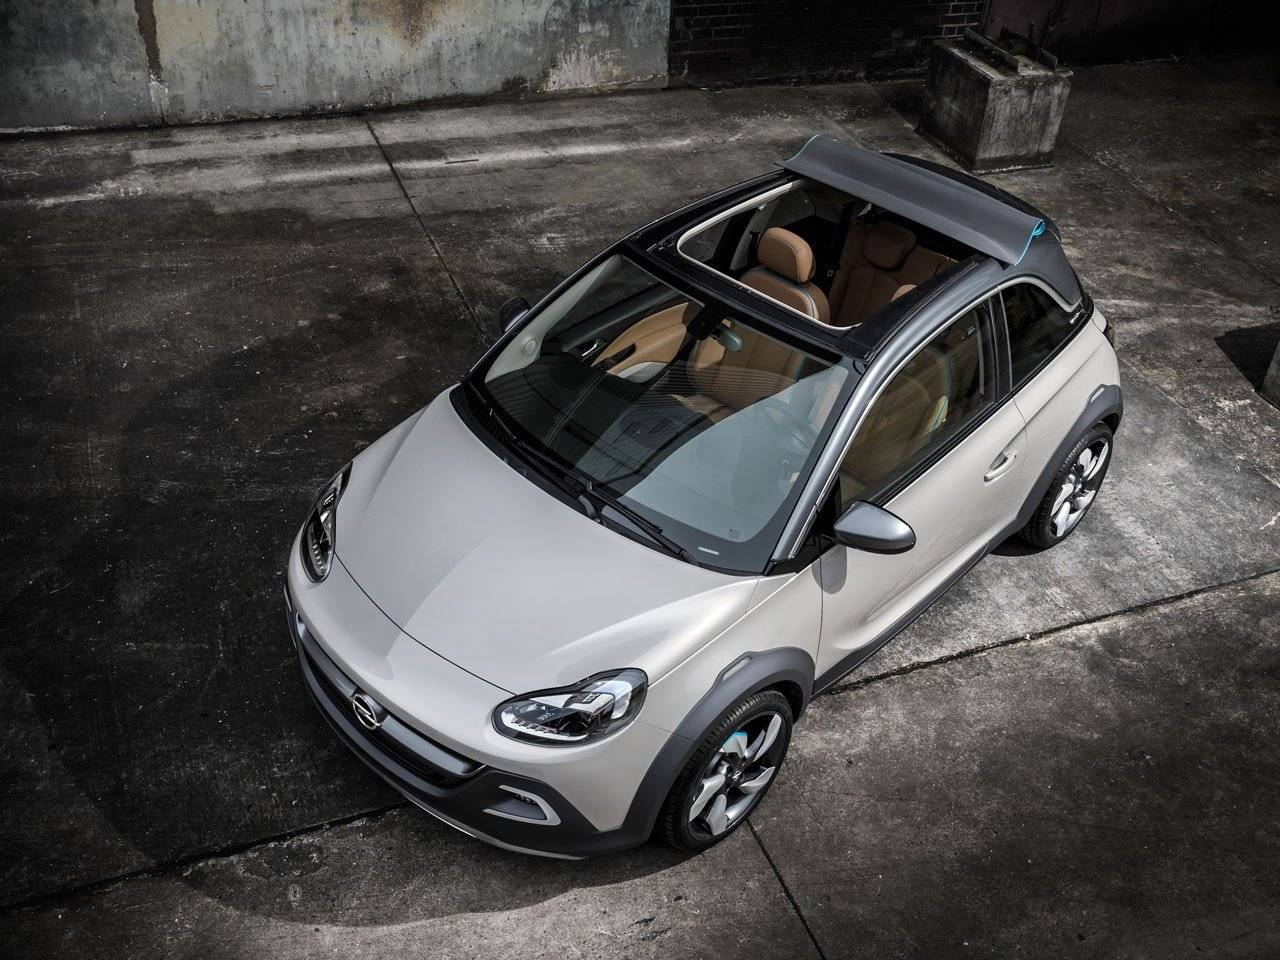 opel adam rocks cabrio en crossover in n autonieuws. Black Bedroom Furniture Sets. Home Design Ideas